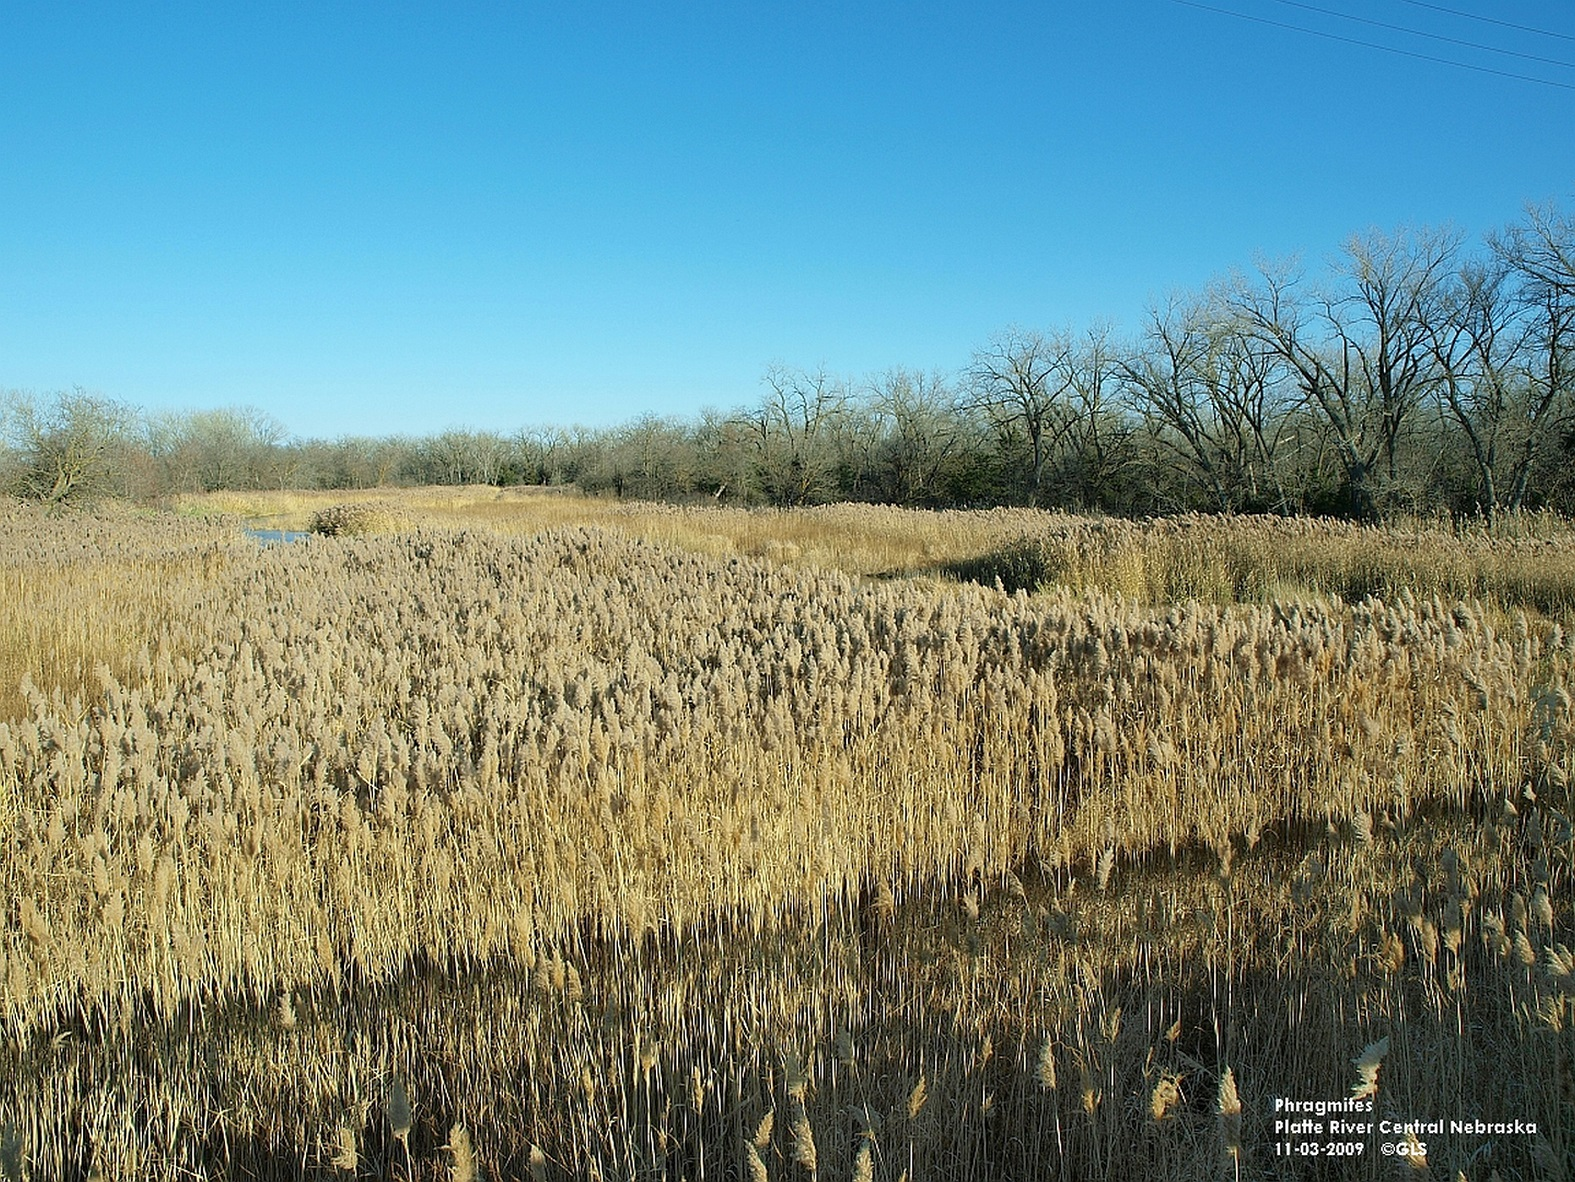 Phragmites North Platte River